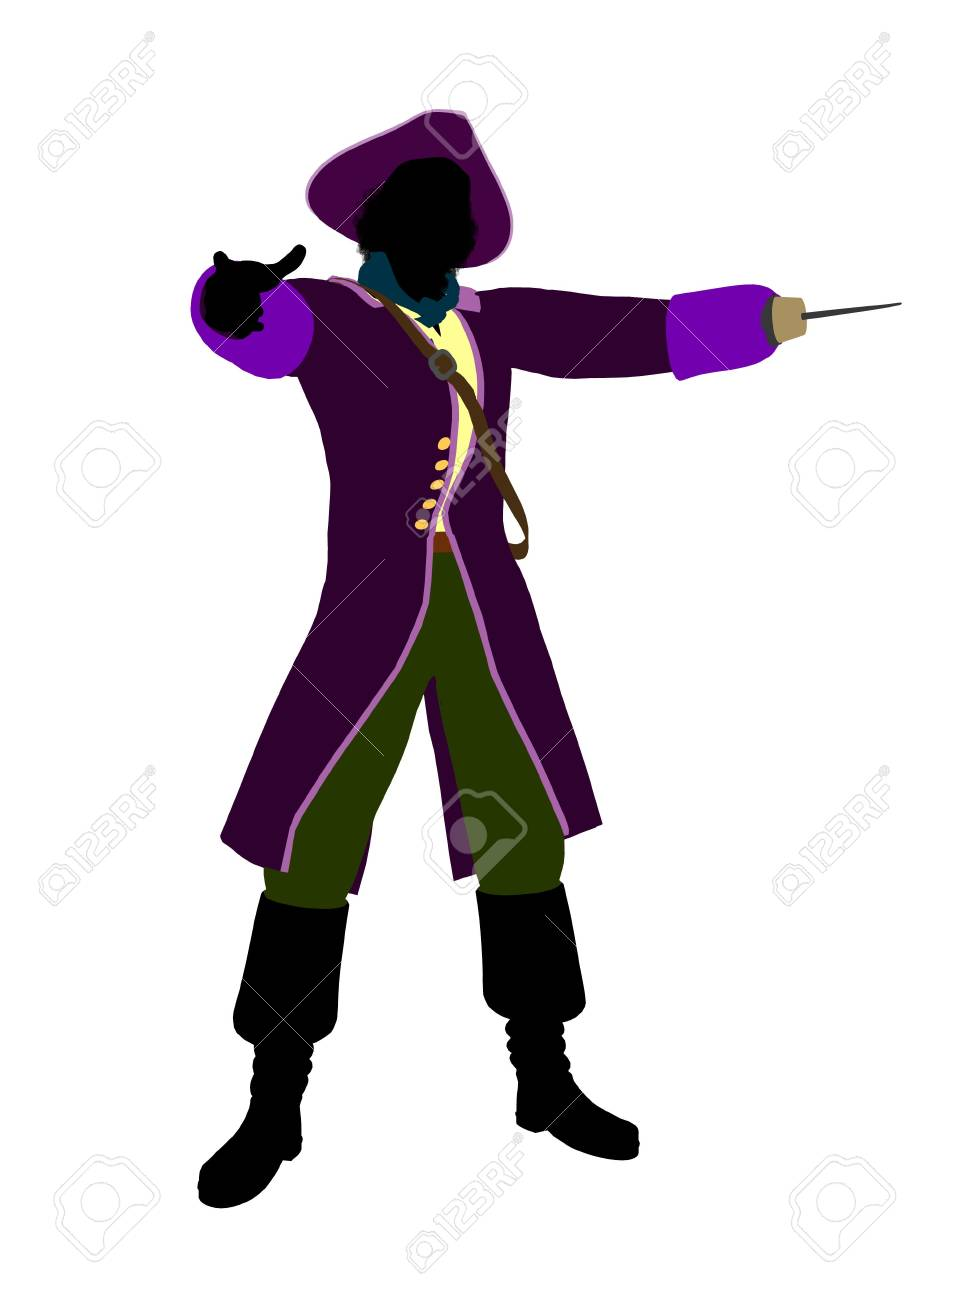 Captain hook illustration silhouette on a white background Stock Photo - 6585848